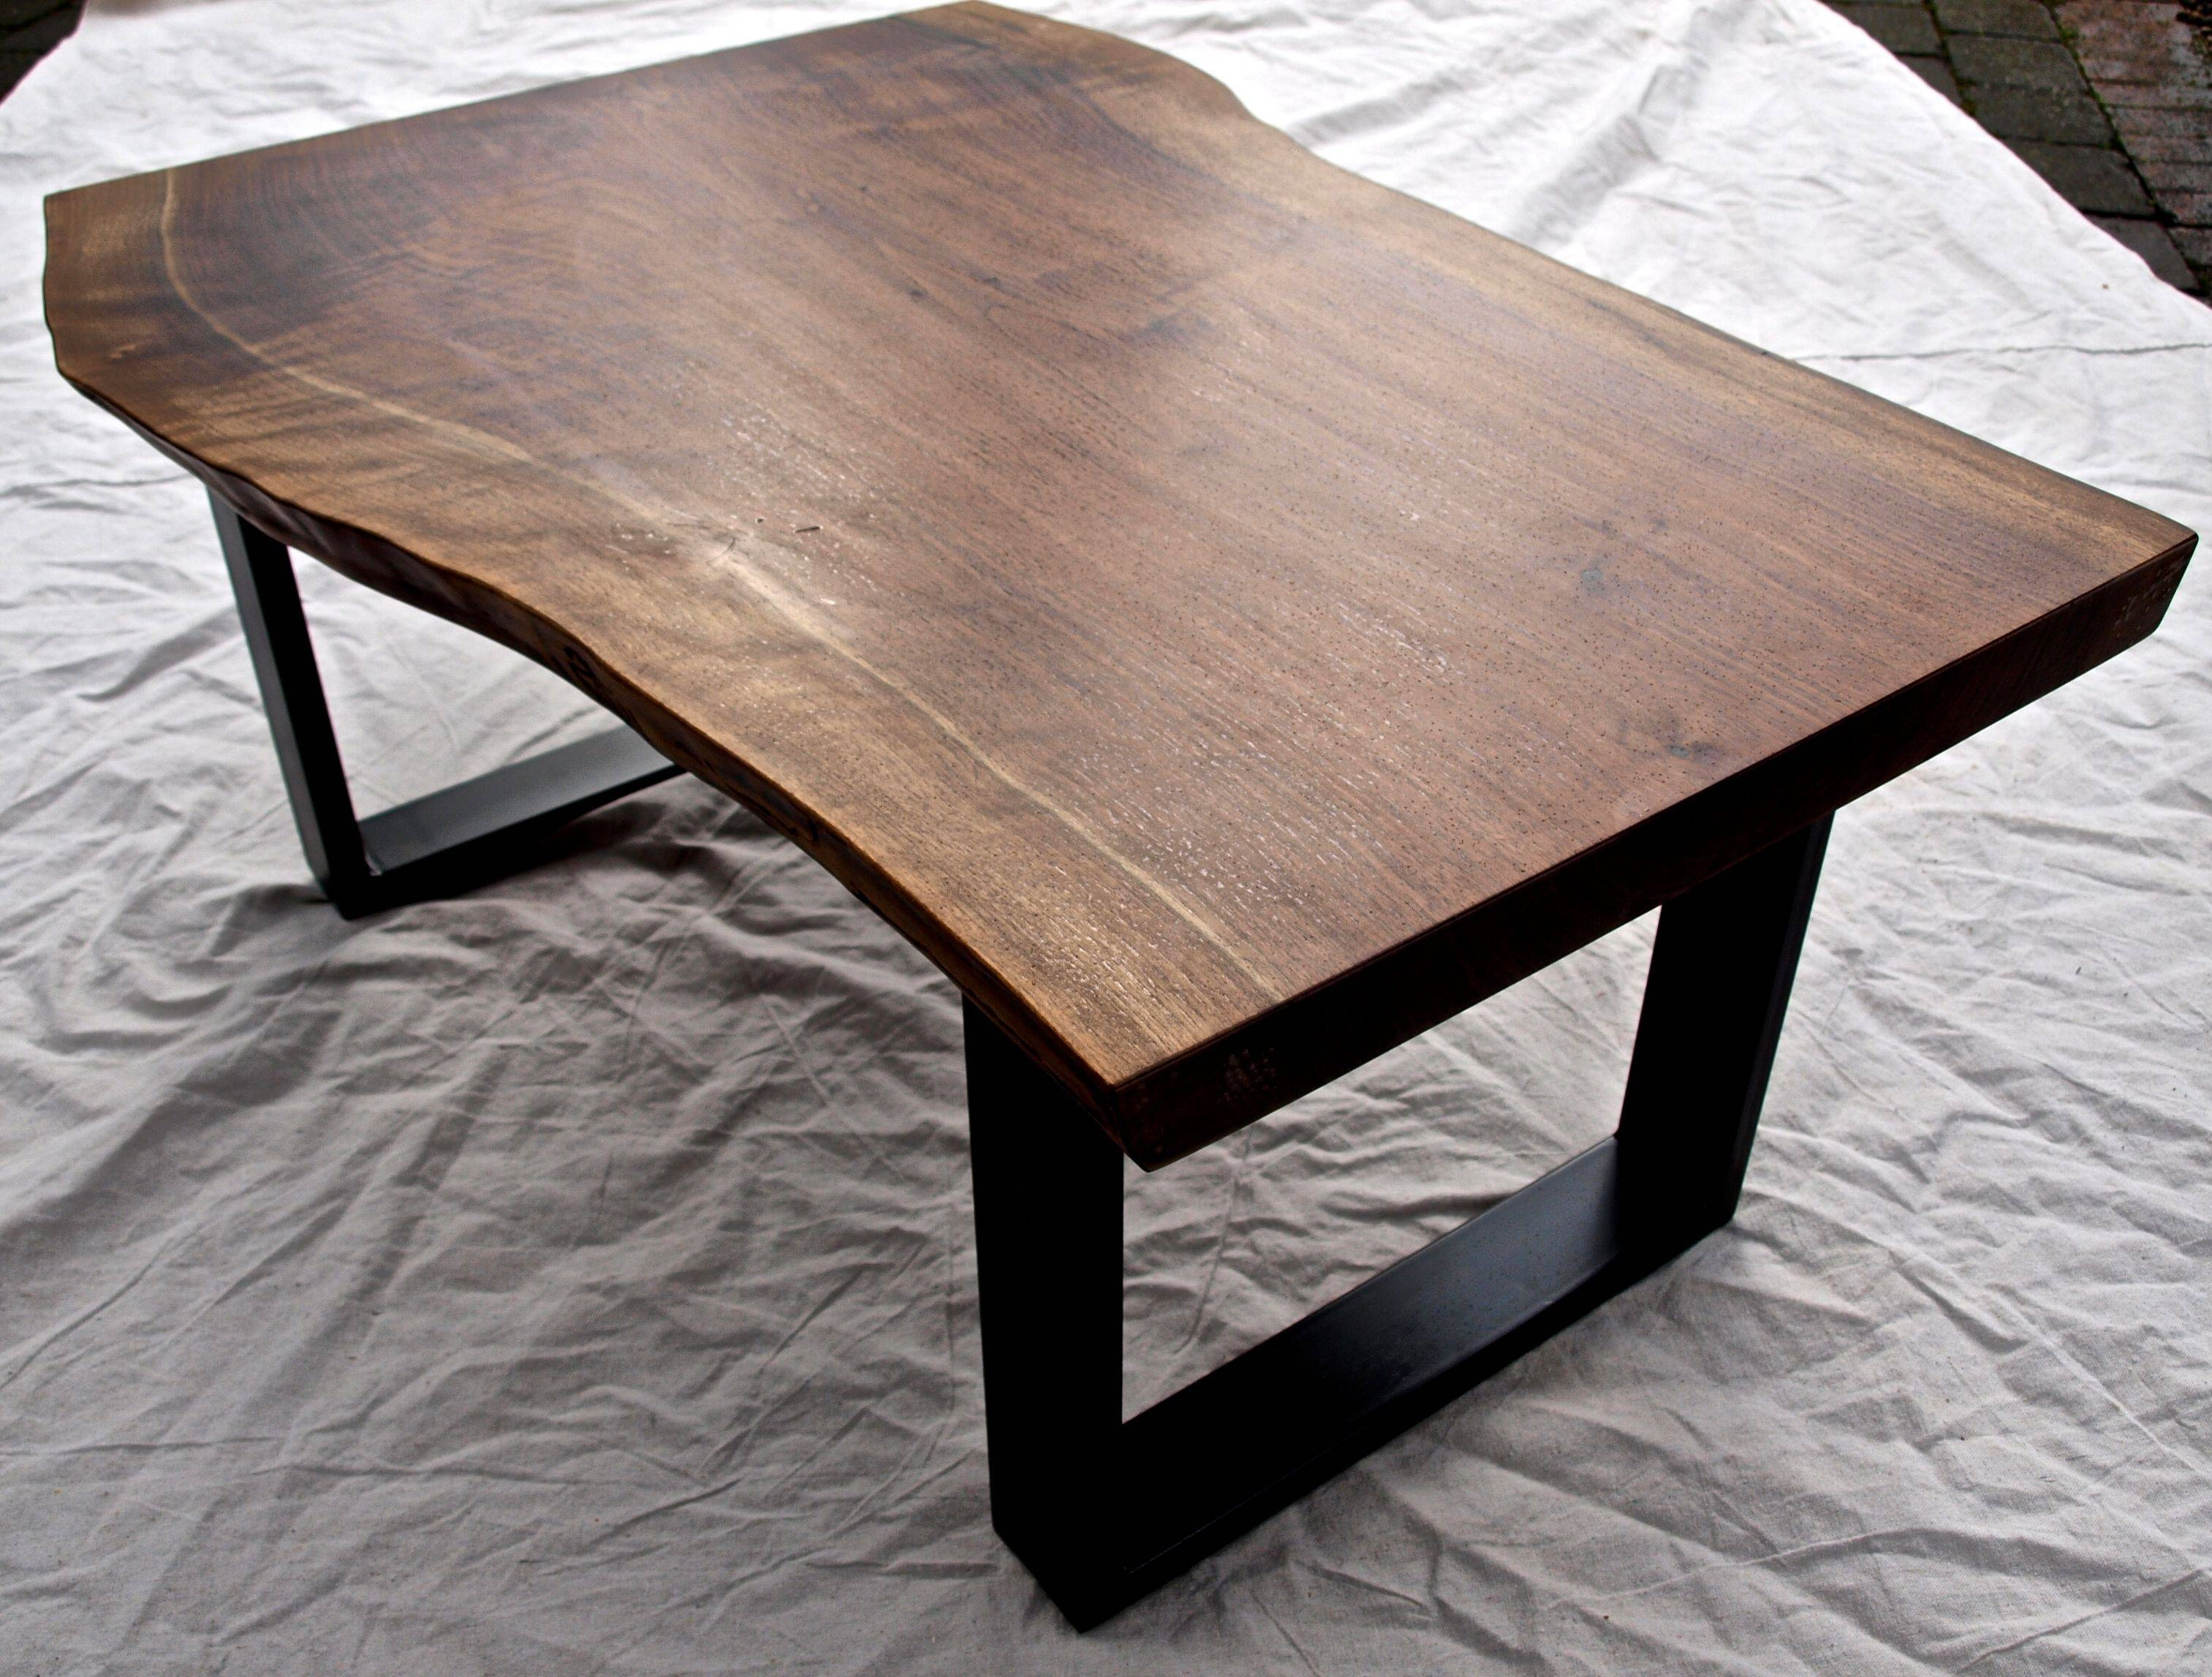 Hand Crafted Live Edge Walnut Coffee Tablewitness Tree Studios pertaining to Live Edge Coffee Tables (Image 6 of 15)